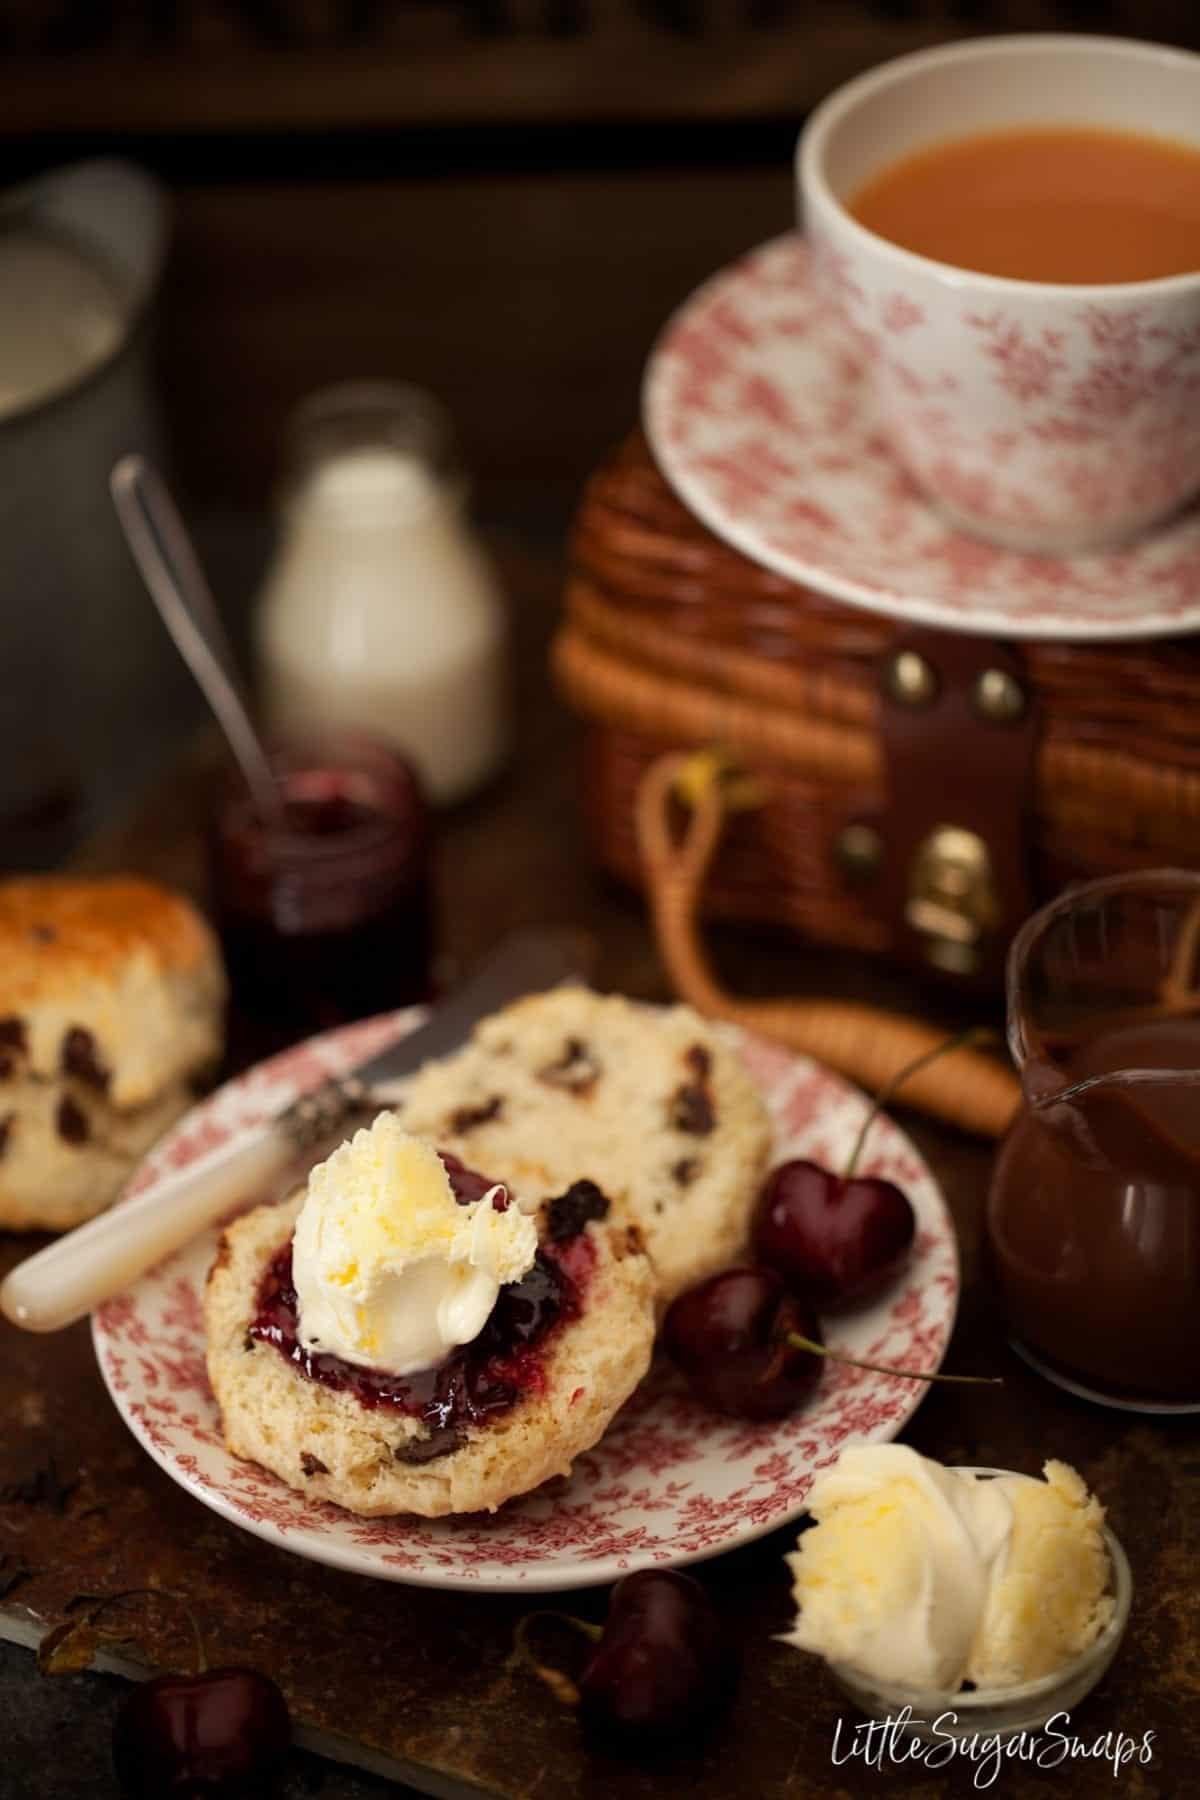 Chocolate chip scone with jam and clotted cream as part of a cream tea.